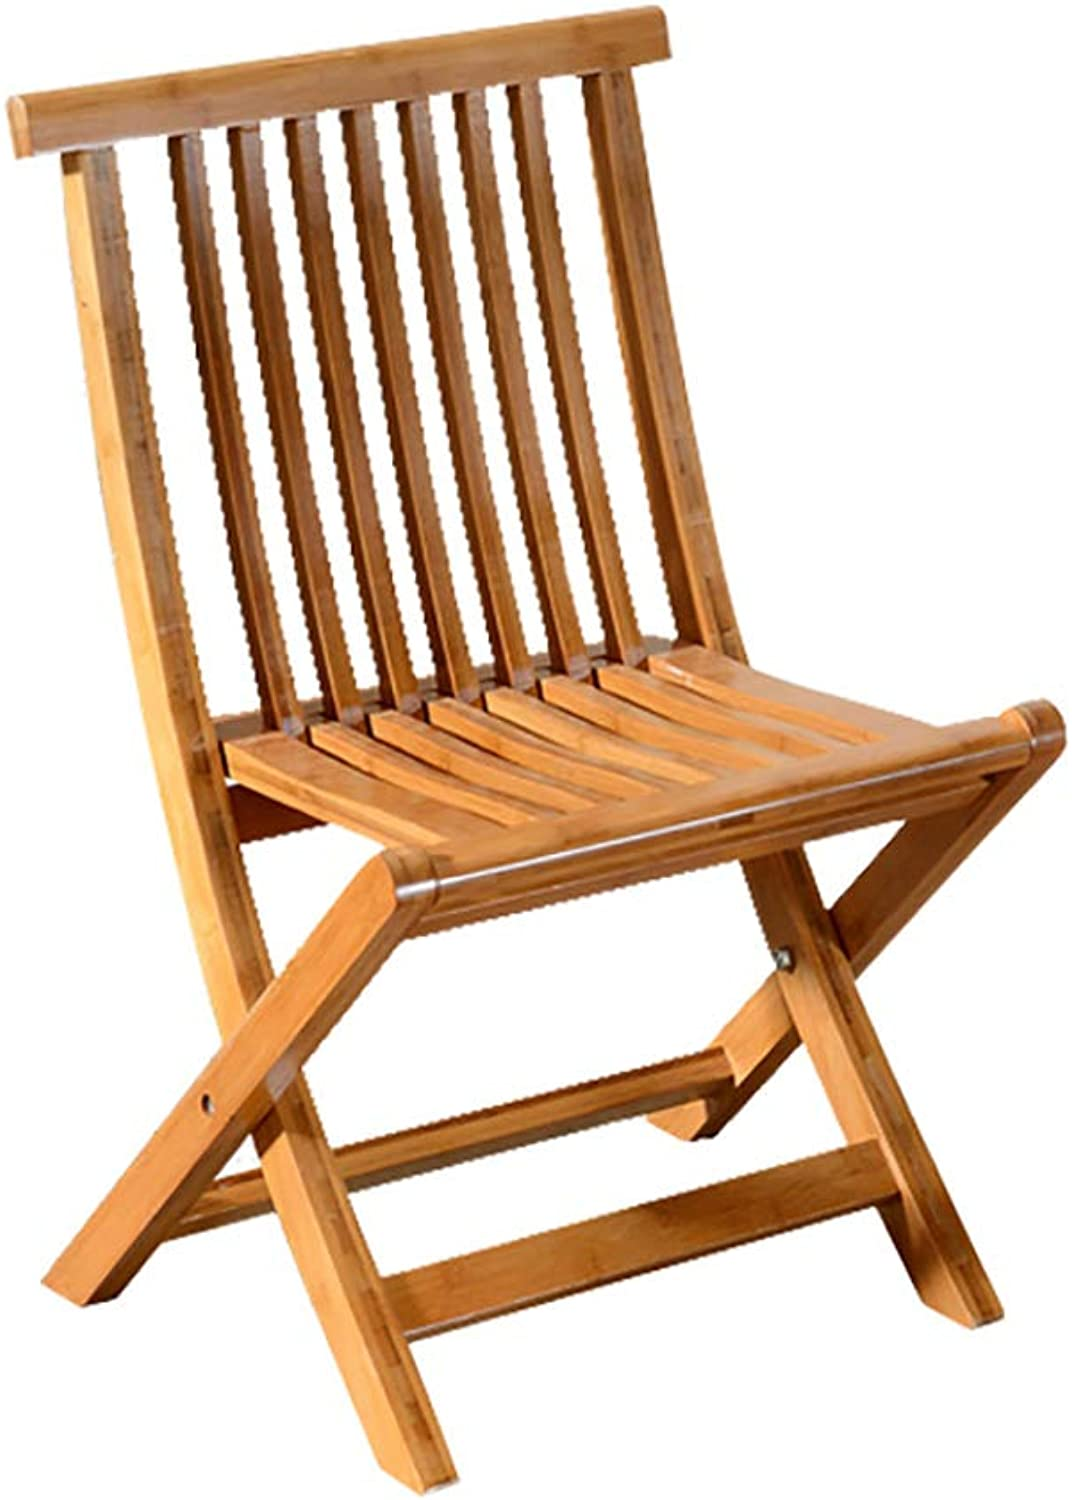 Folding Chair Bamboo Dining Chair Fishing Chair Portable Folding Chair with backrest (Size   35  25  58cm)